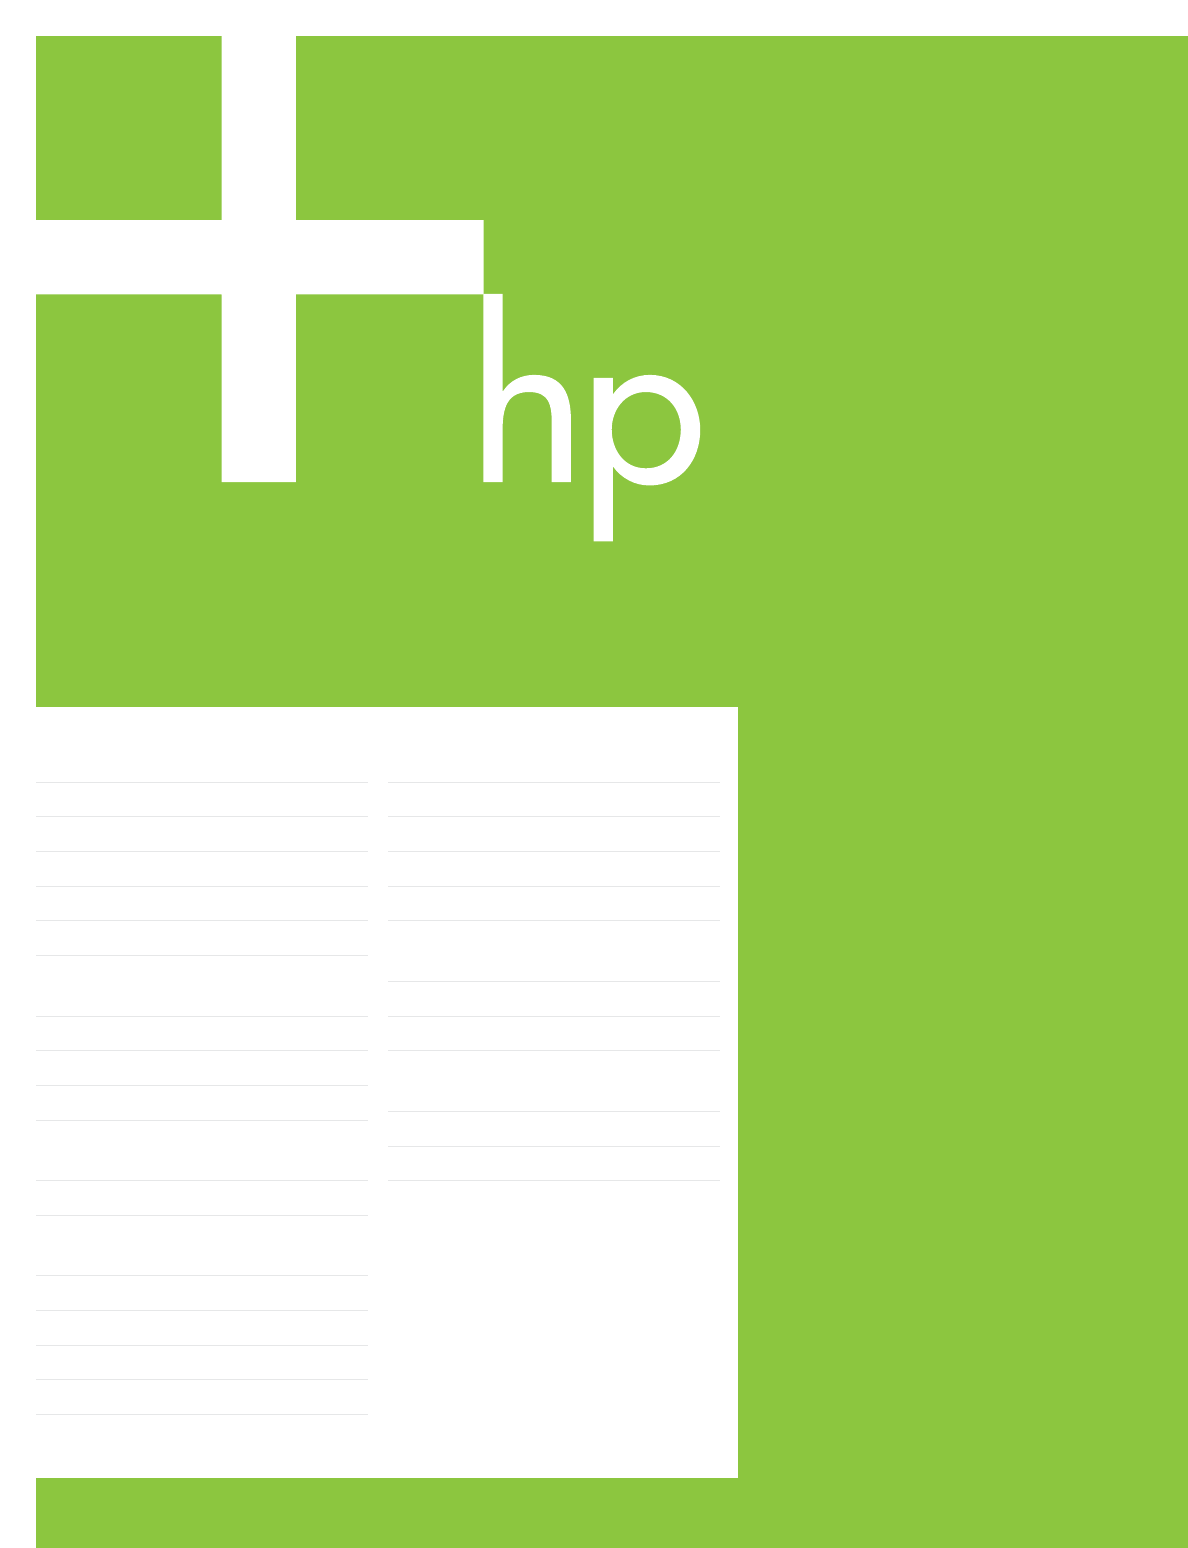 Phenomenal Hp Printing And Digital Imaging Products Selection Guide Download Free Architecture Designs Photstoregrimeyleaguecom